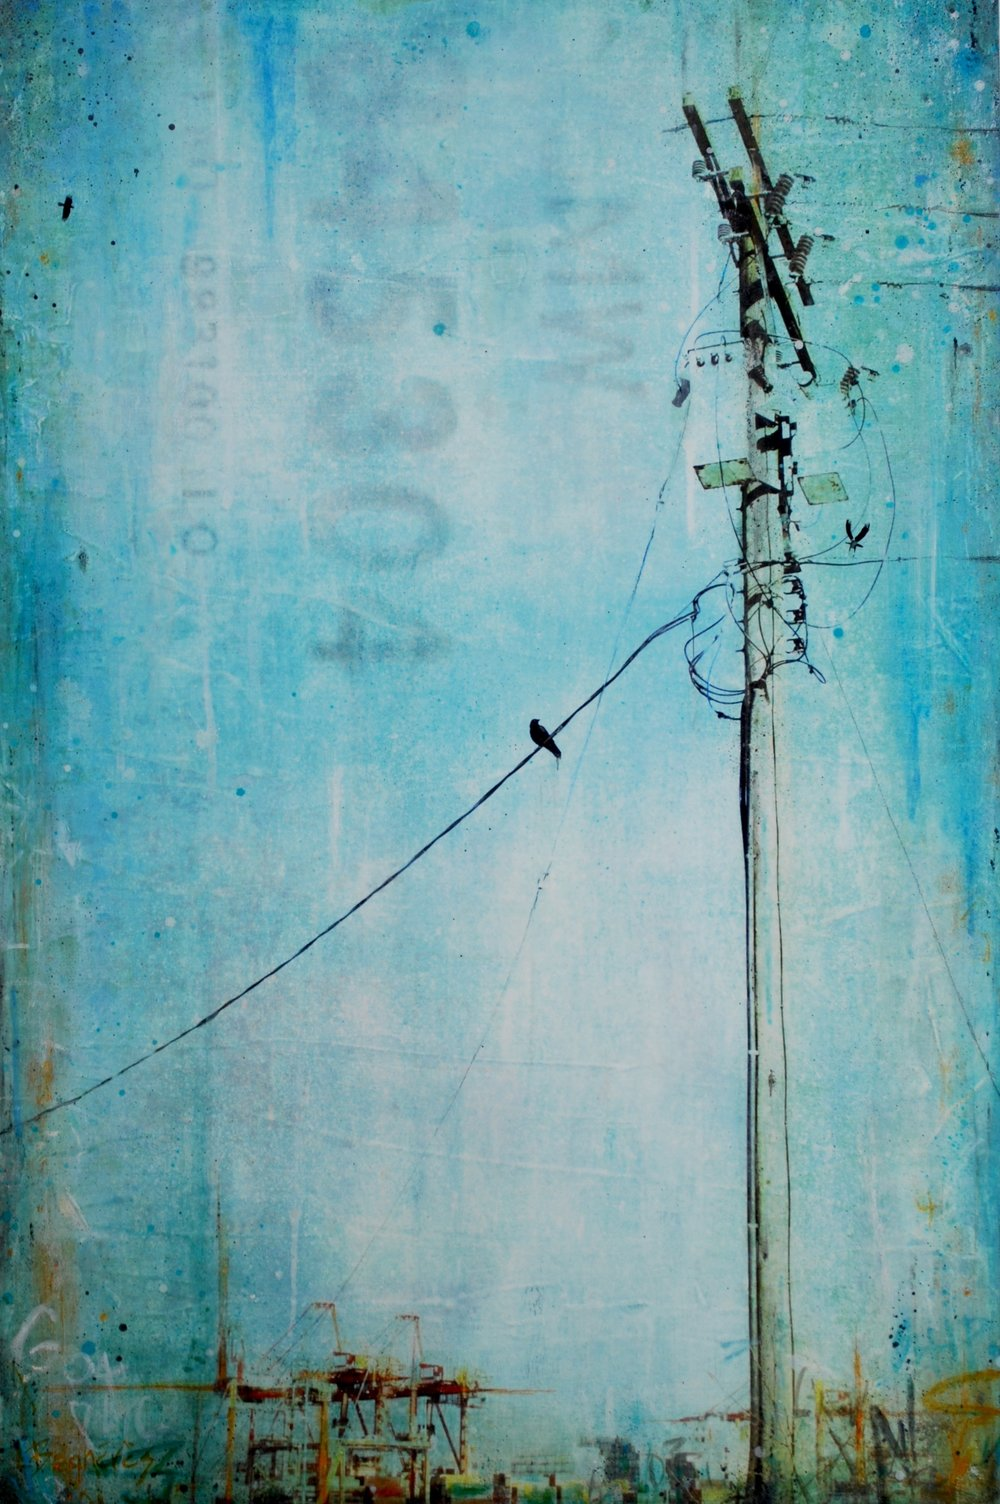 Cranes, Cables & Crows  2018, mixed media on cradled panel, 32x21 inches